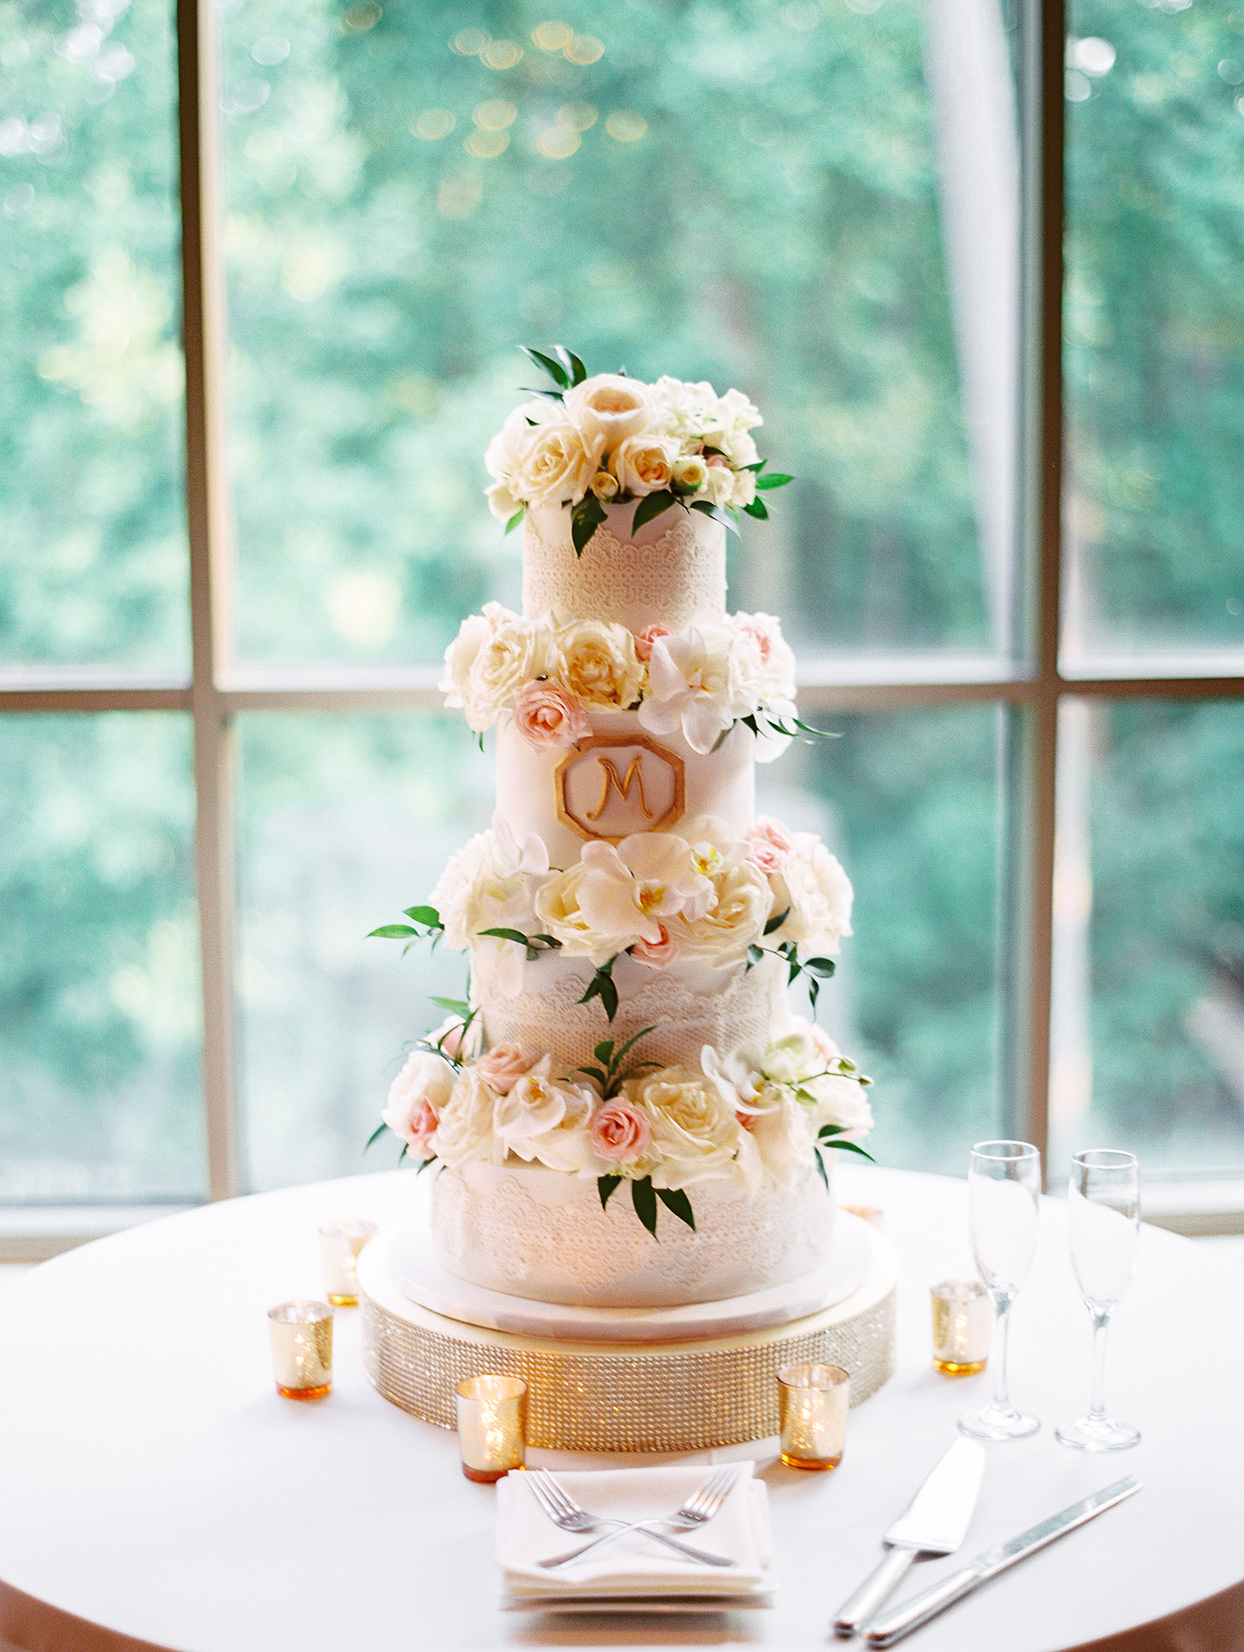 A Breathtaking Wedding Cake